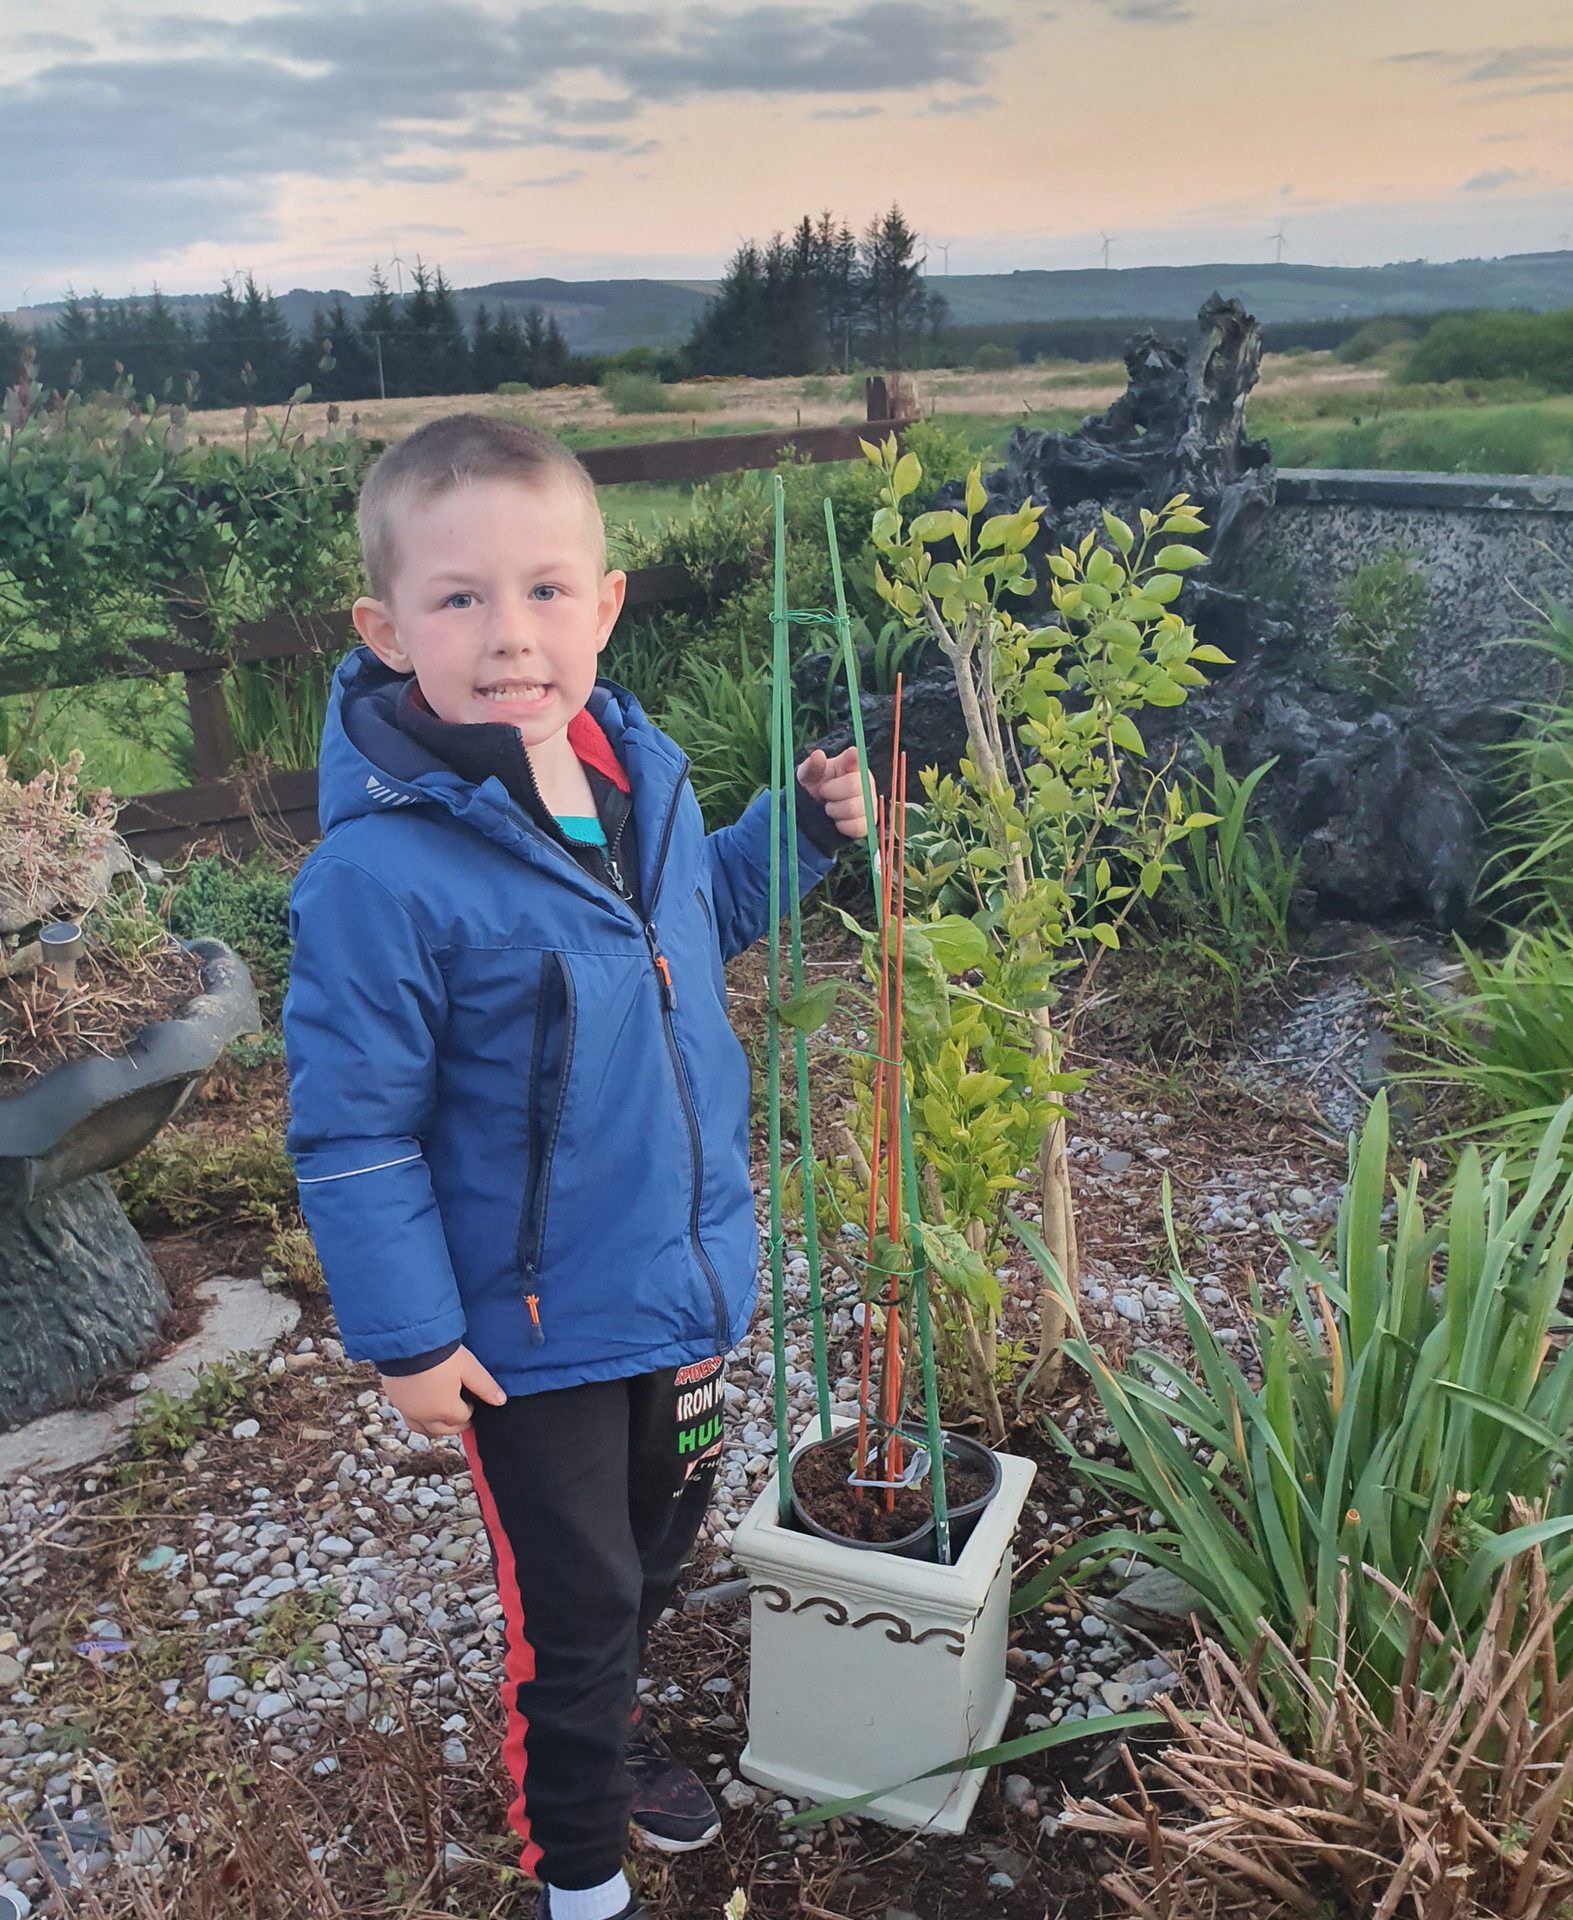 Leyton planting his sunflower plant